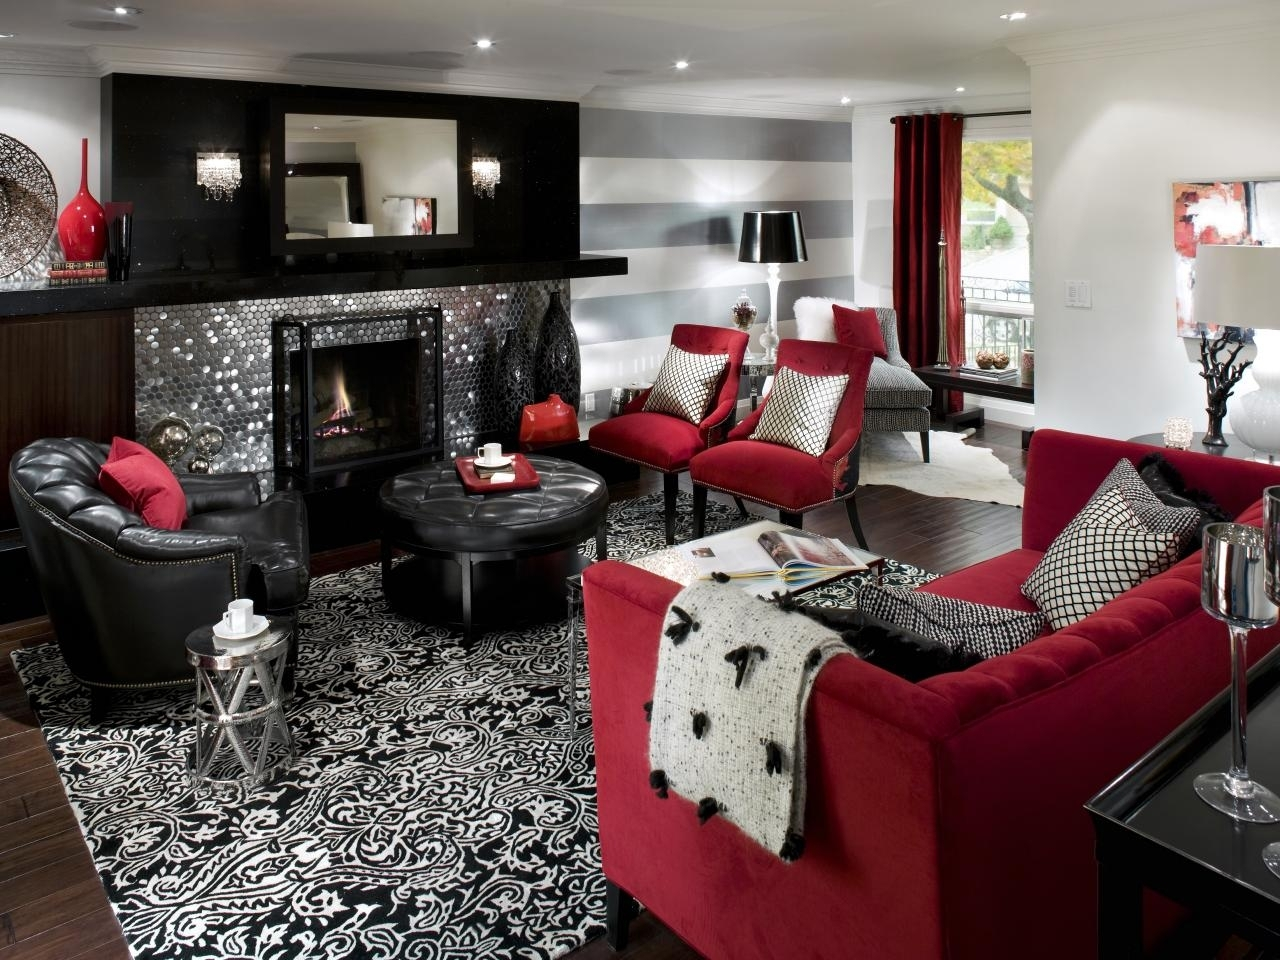 10 Beautiful Red And Black Living Room Ideas %name 2020